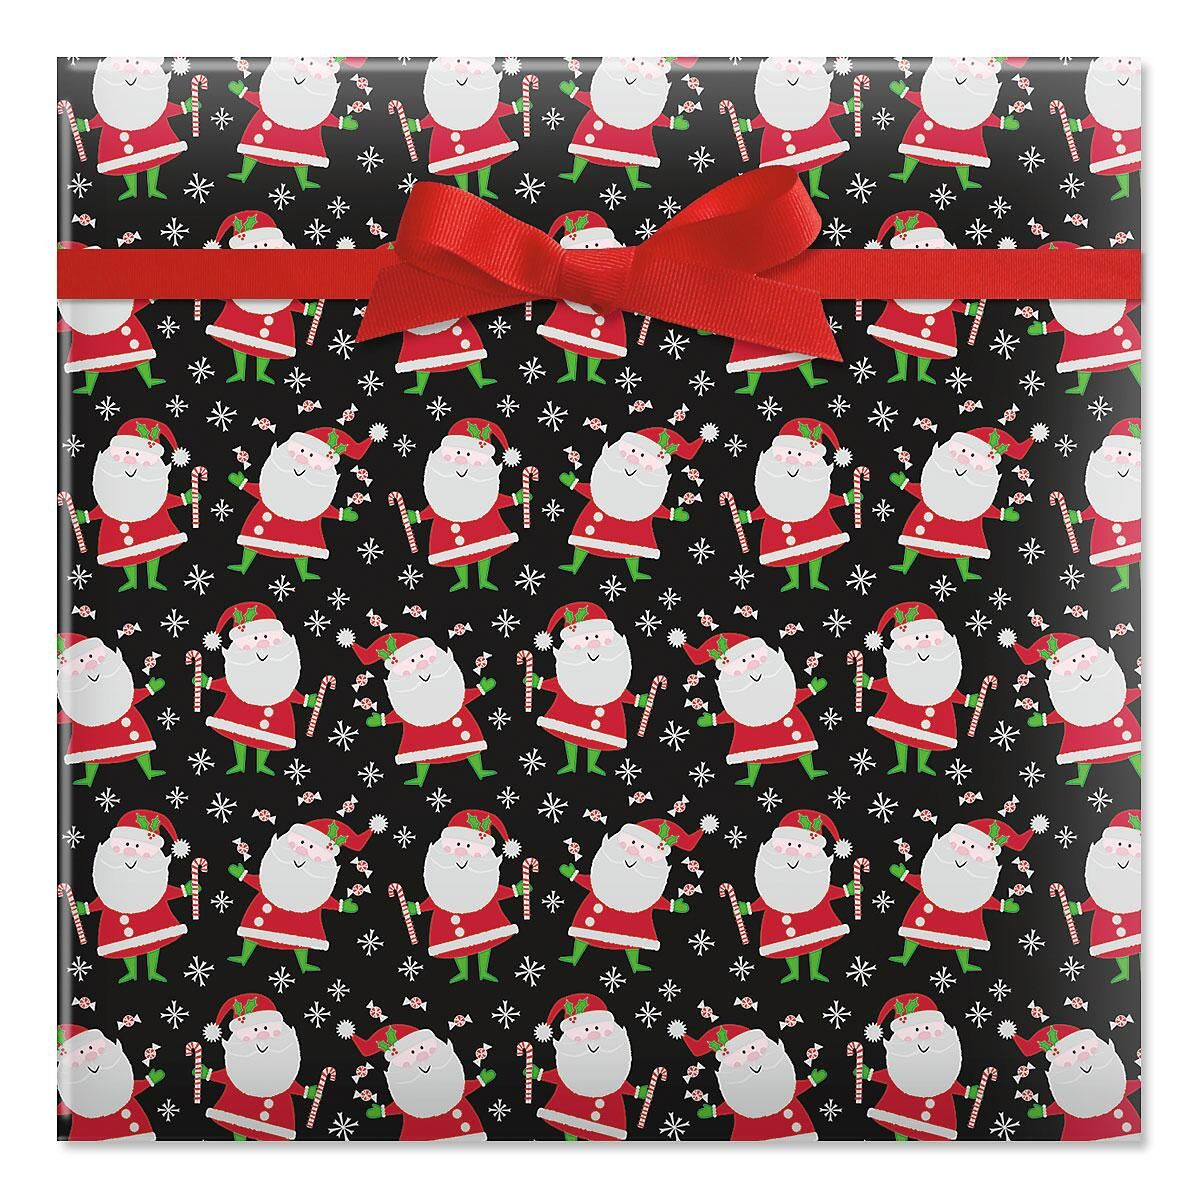 Santa's Sweets Jumbo Rolled Gift Wrap